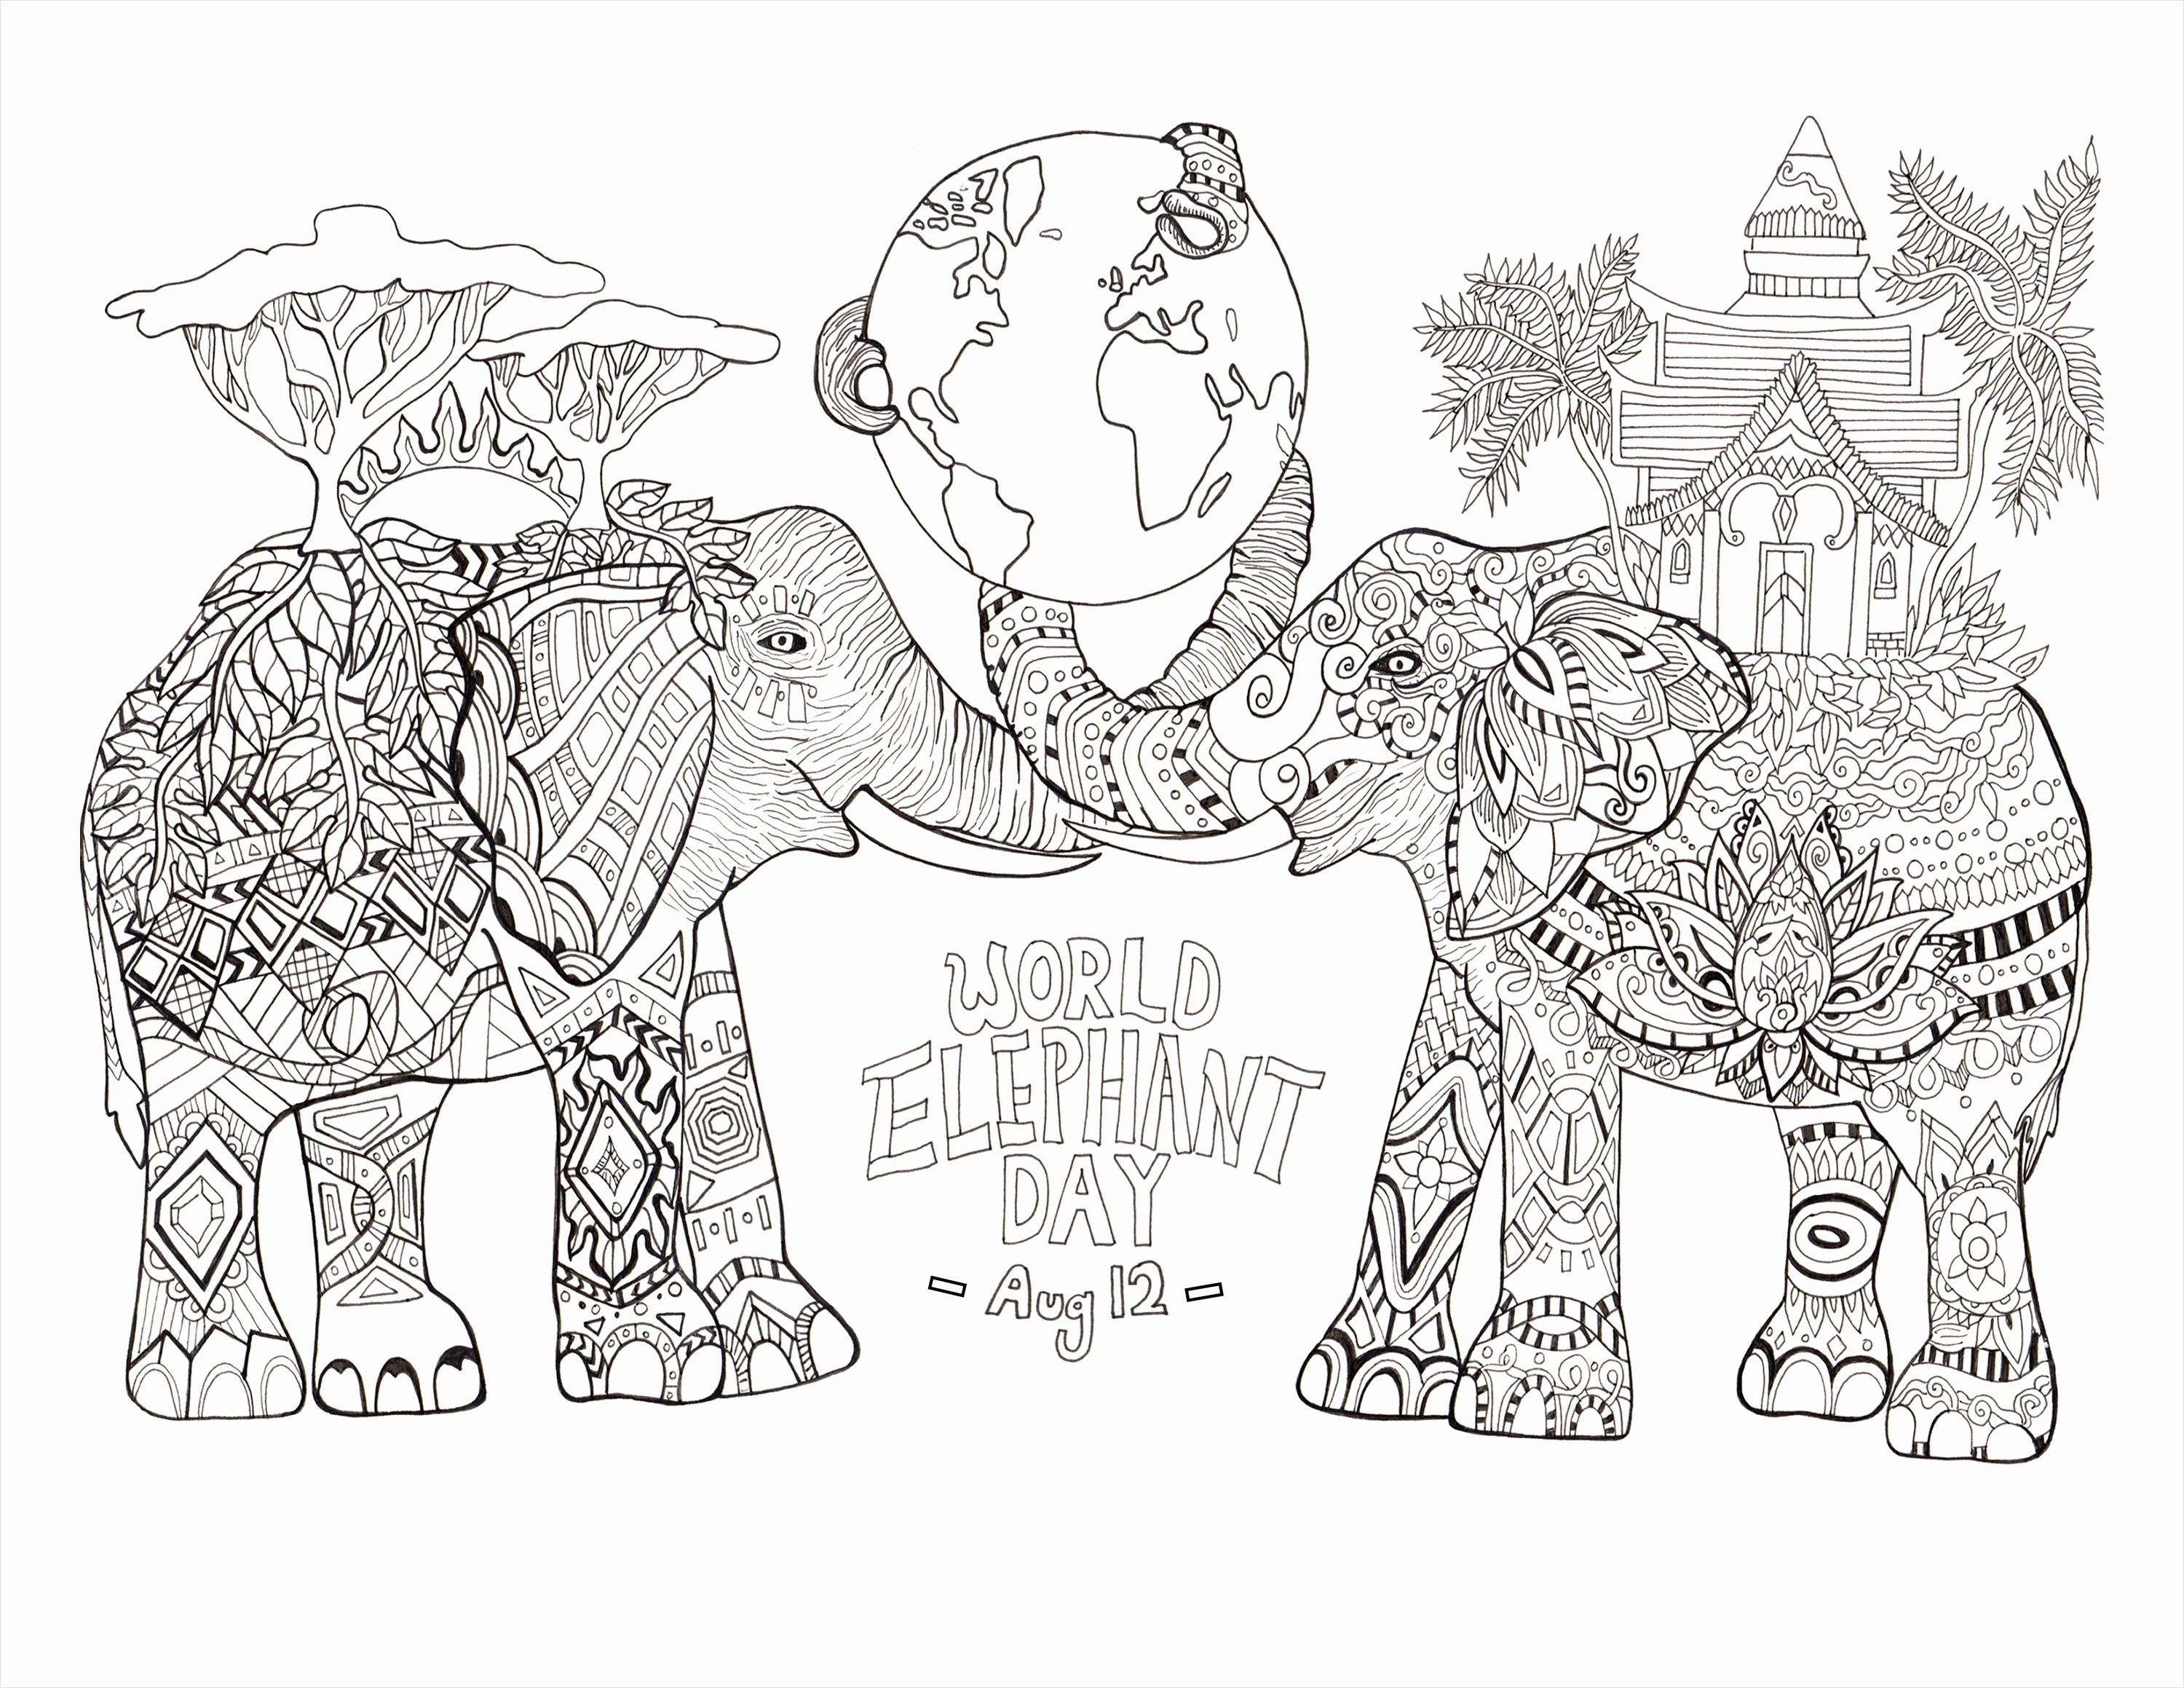 Horse Coloring Pages For Adults Inspirational Bucking Horse Coloring Pages Elephant Coloring Page Bear Coloring Pages Superhero Coloring Pages [ 2318 x 3000 Pixel ]